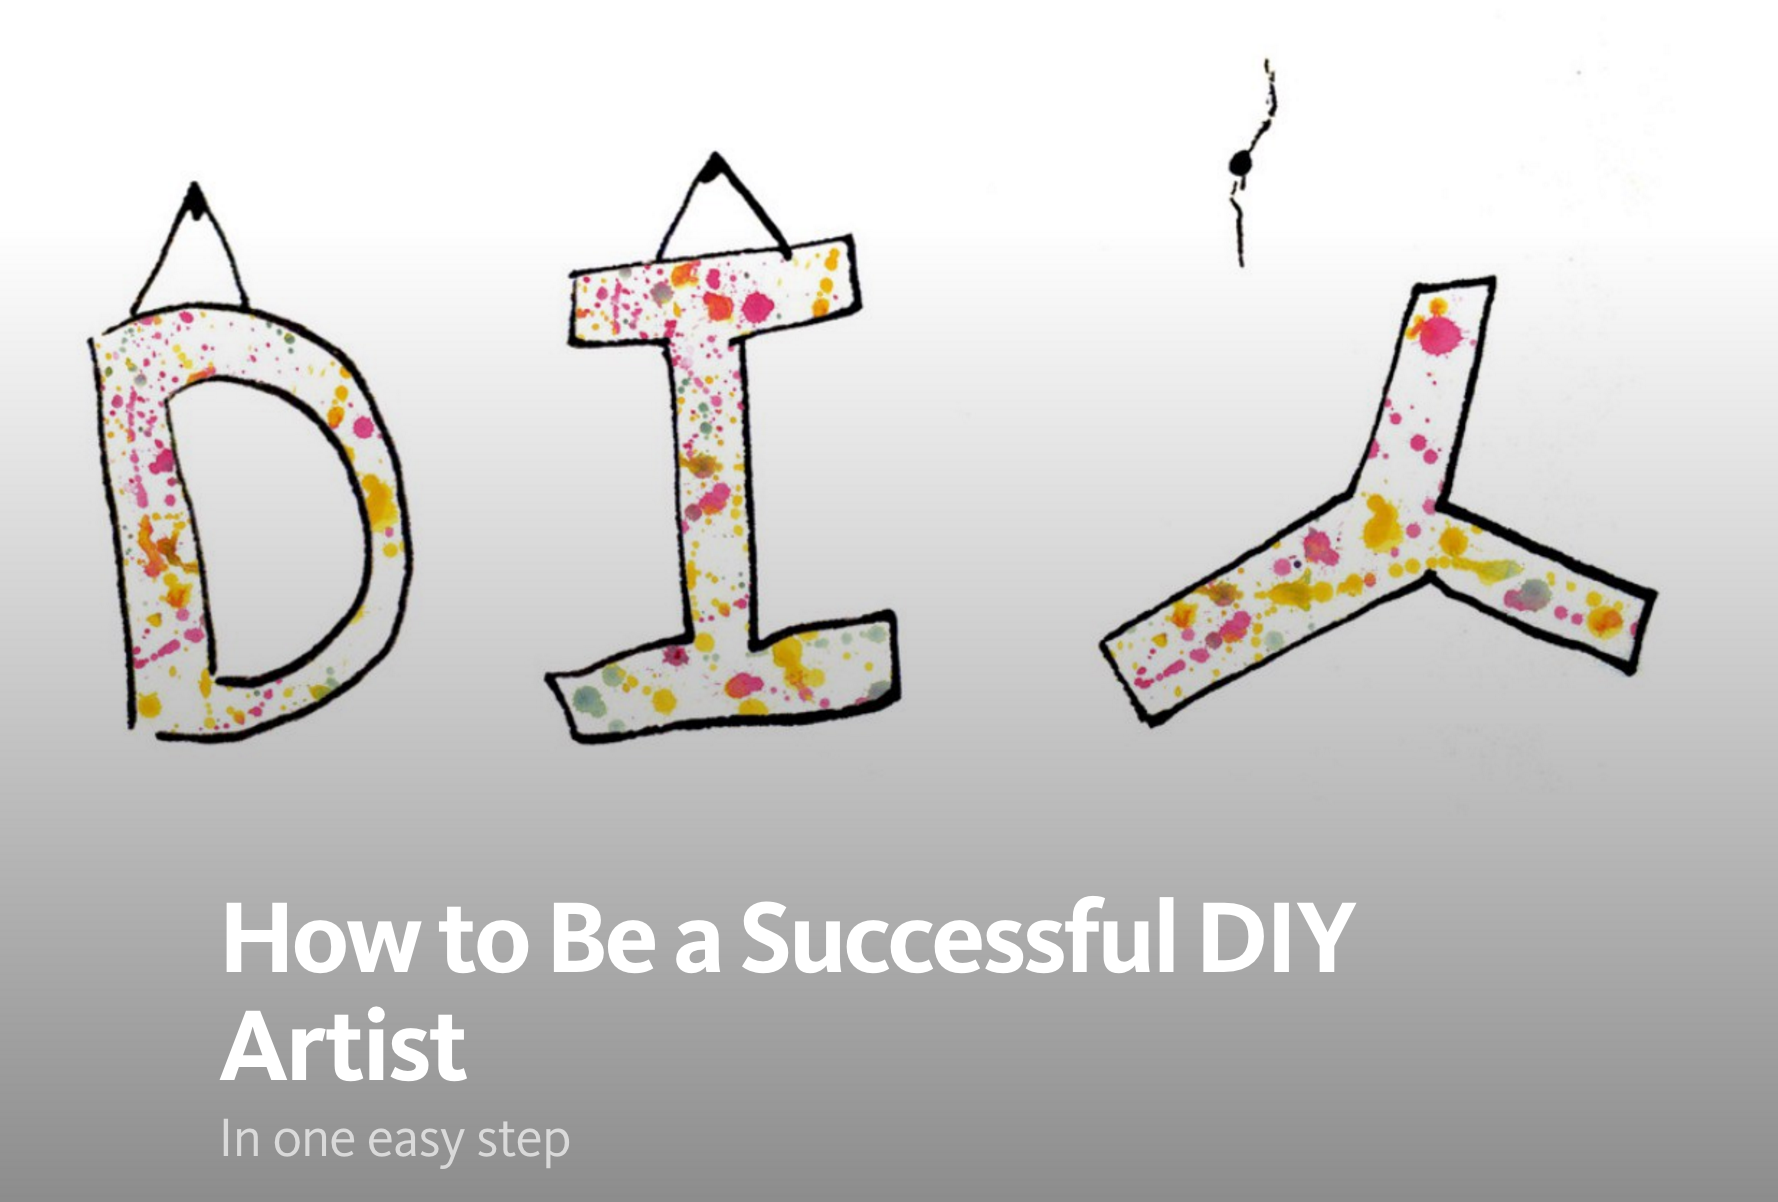 How to Be a Successful DIY Artist